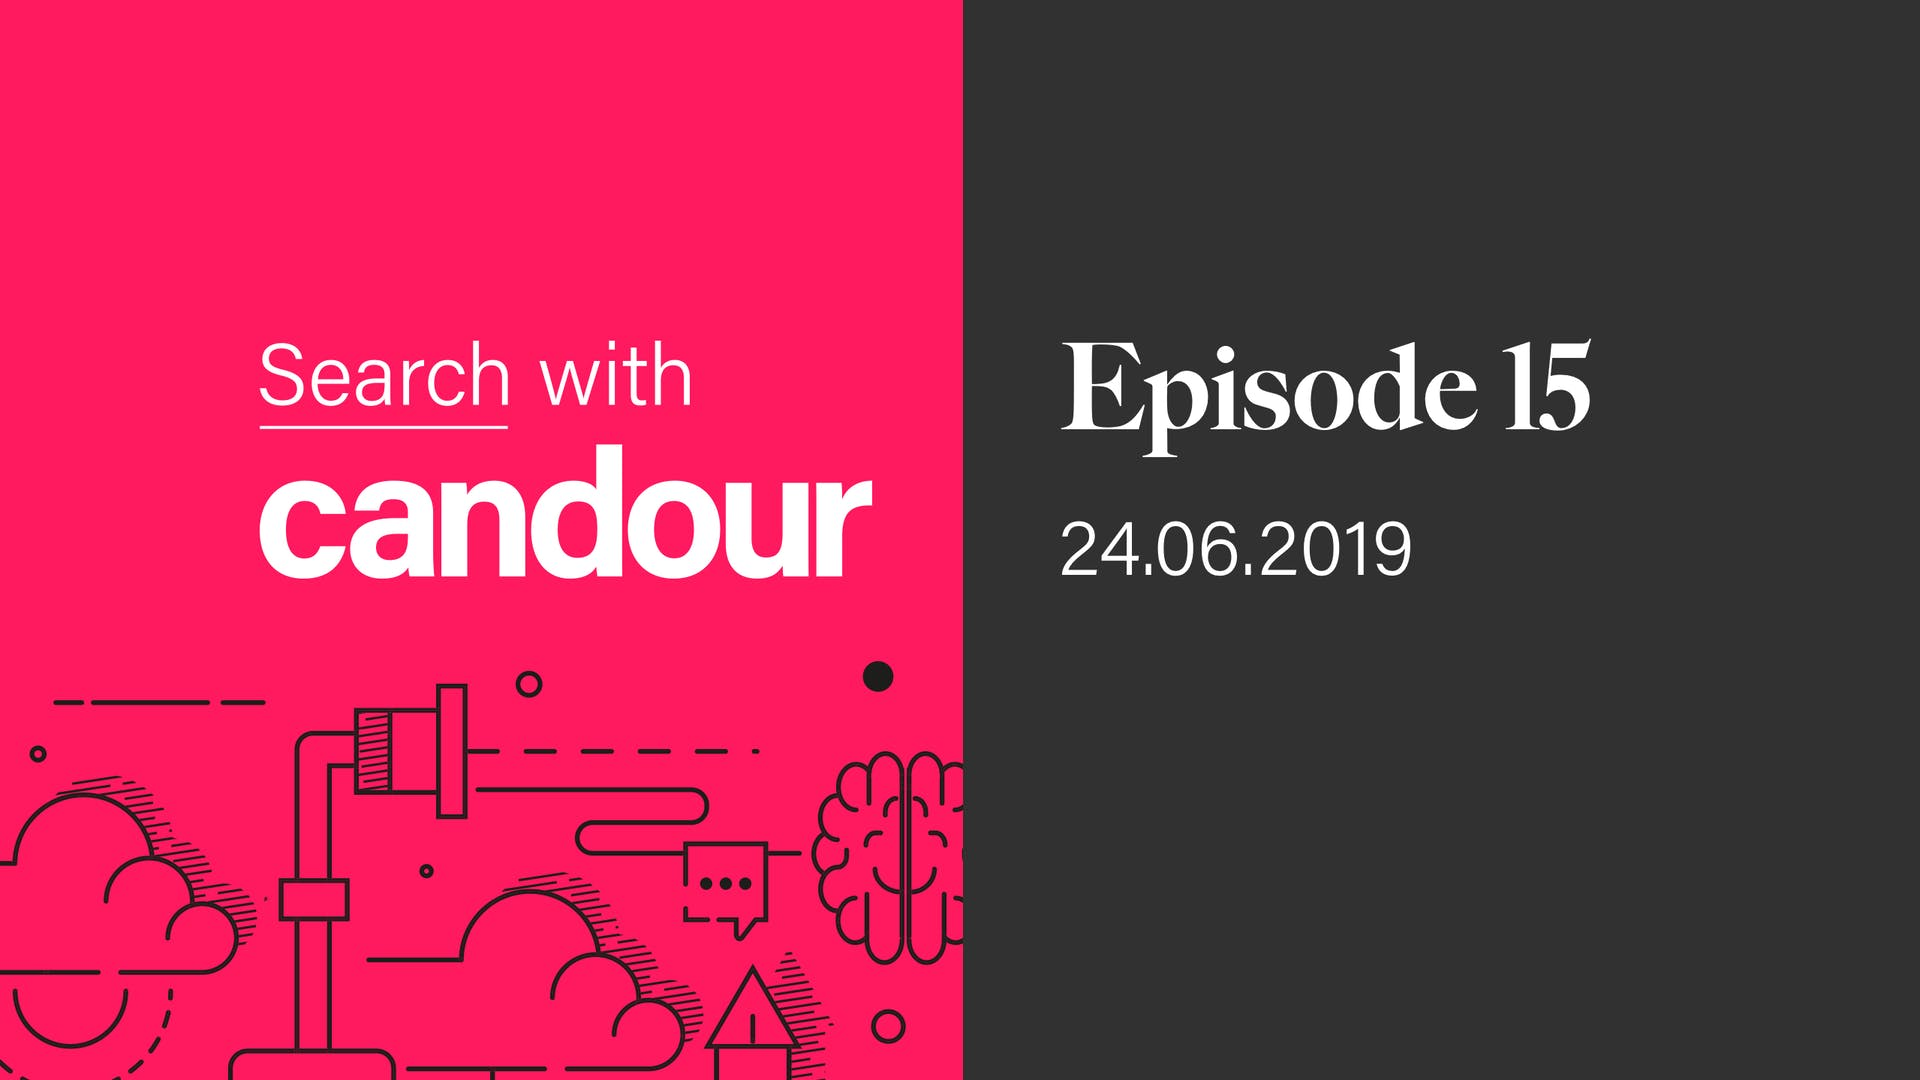 Search with Candour podcast - Episode 15